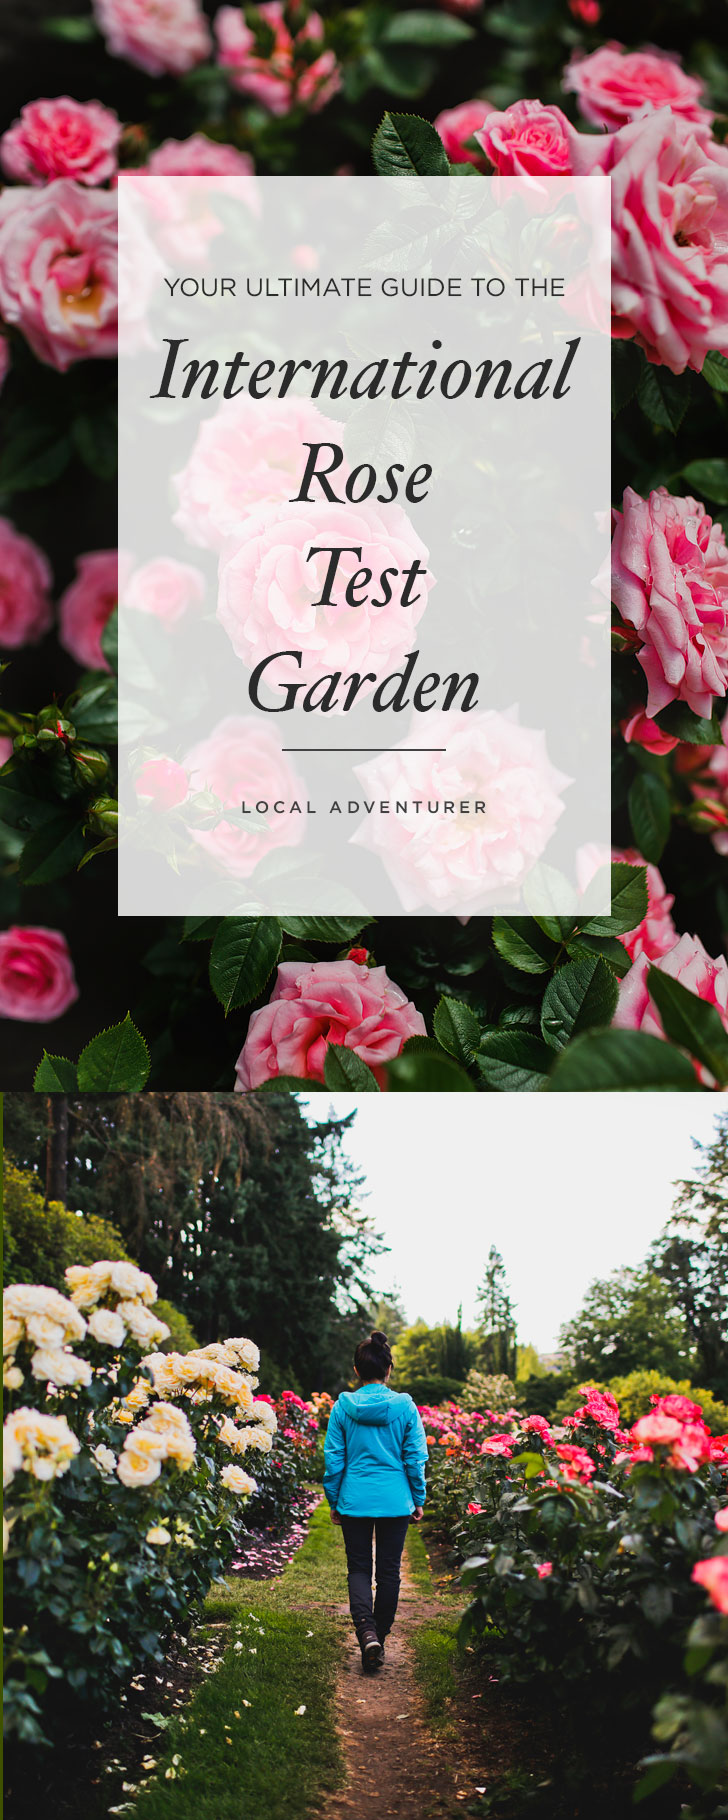 Visiting Portland Oregon? You'll want to visit this Portland rose garden. There are 8,000 rose plants and roughly 550 different varieties. Click through to see more photos and tips // Local Adventurer #pnw #rose #portland